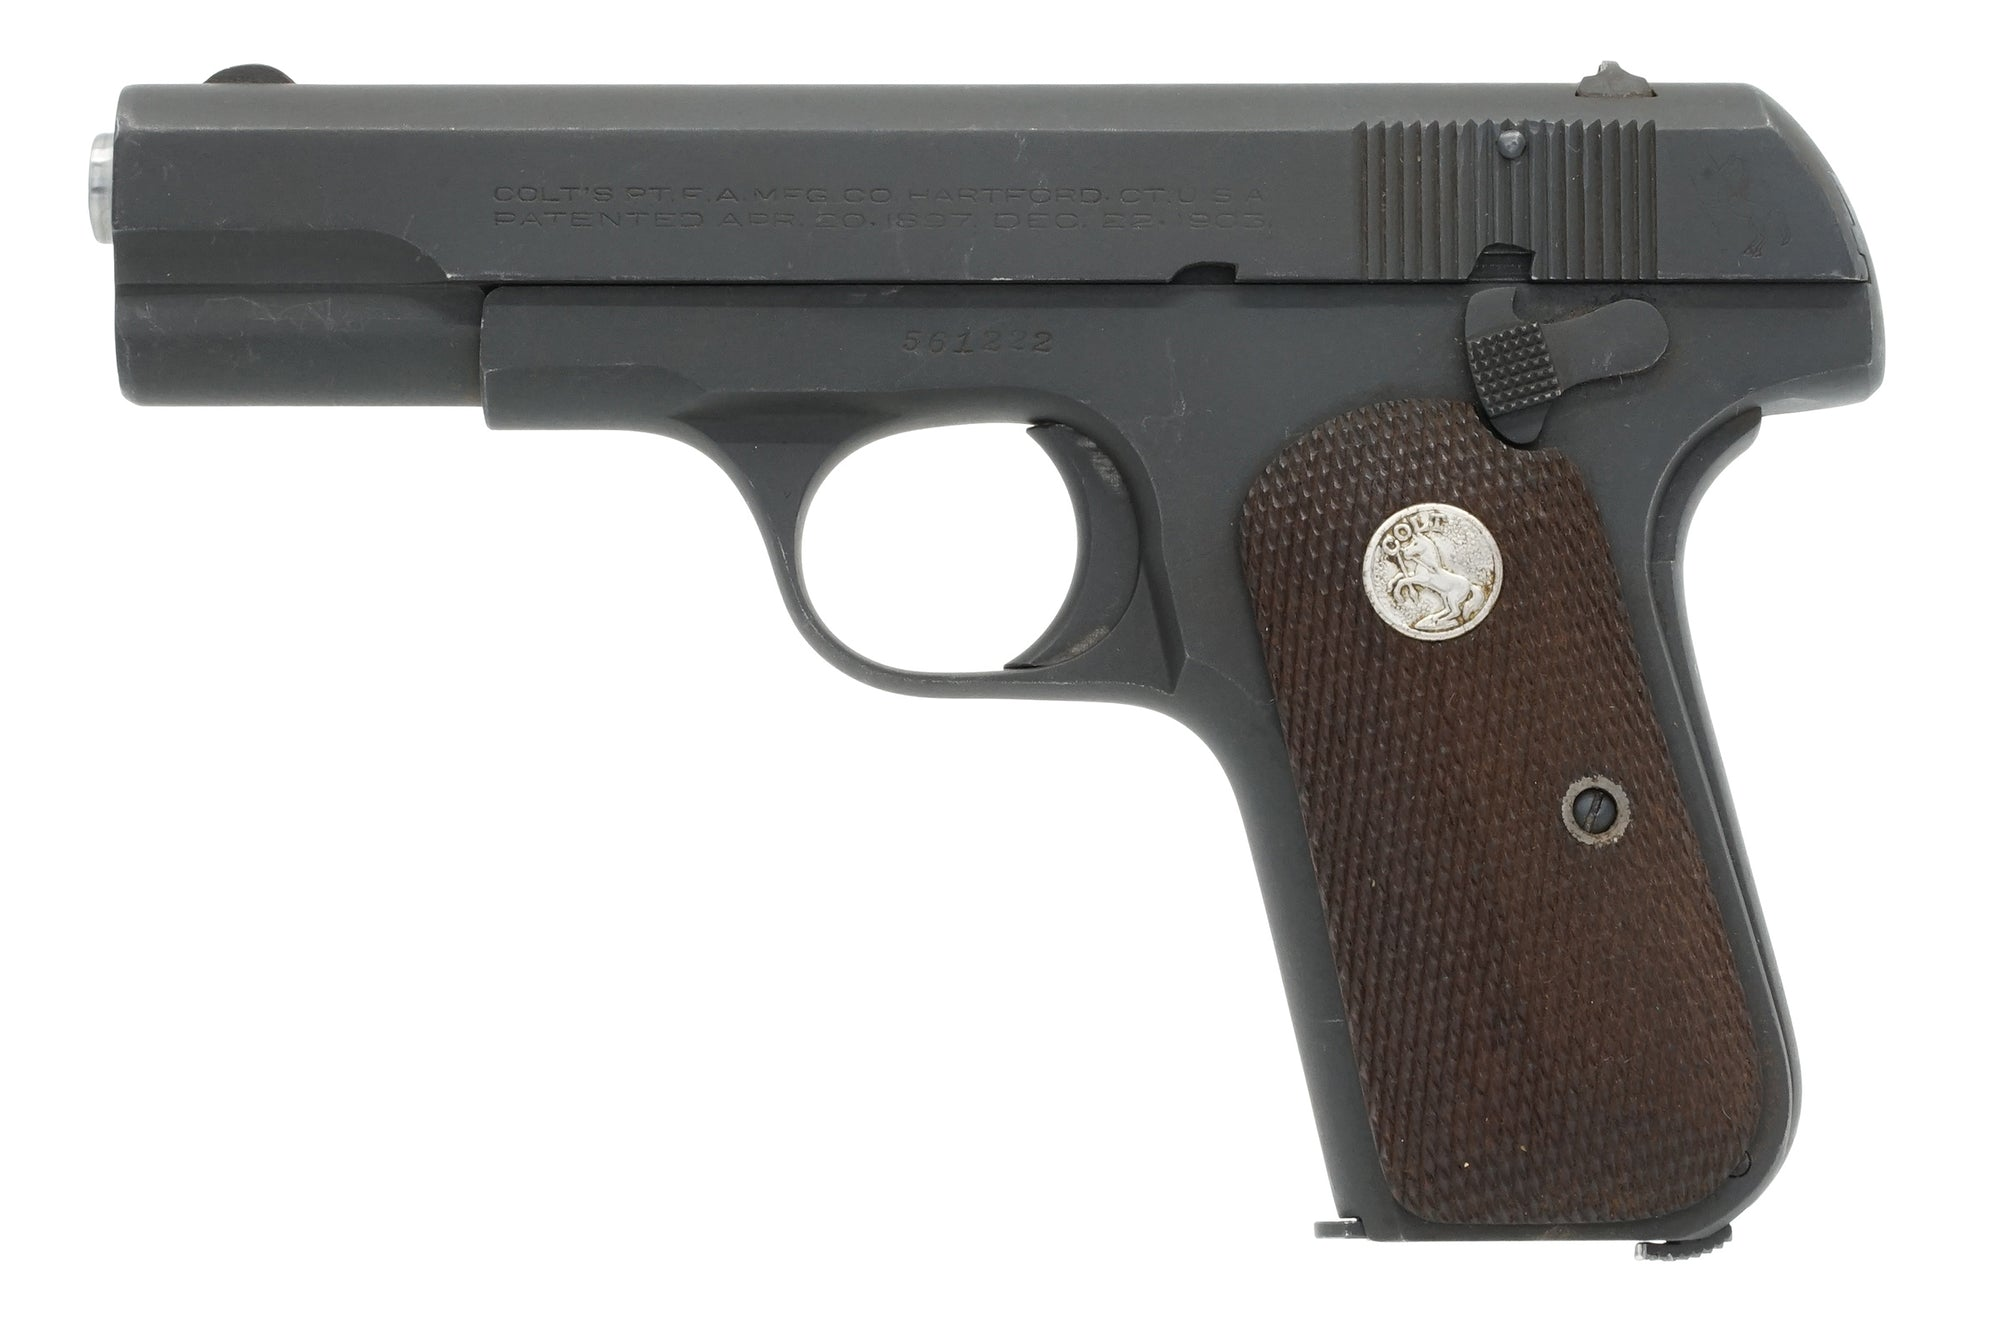 Colt 1903 Pocket Hammerless 32ACP SN:561222 MFG:1944 - Brigadier General Shaller